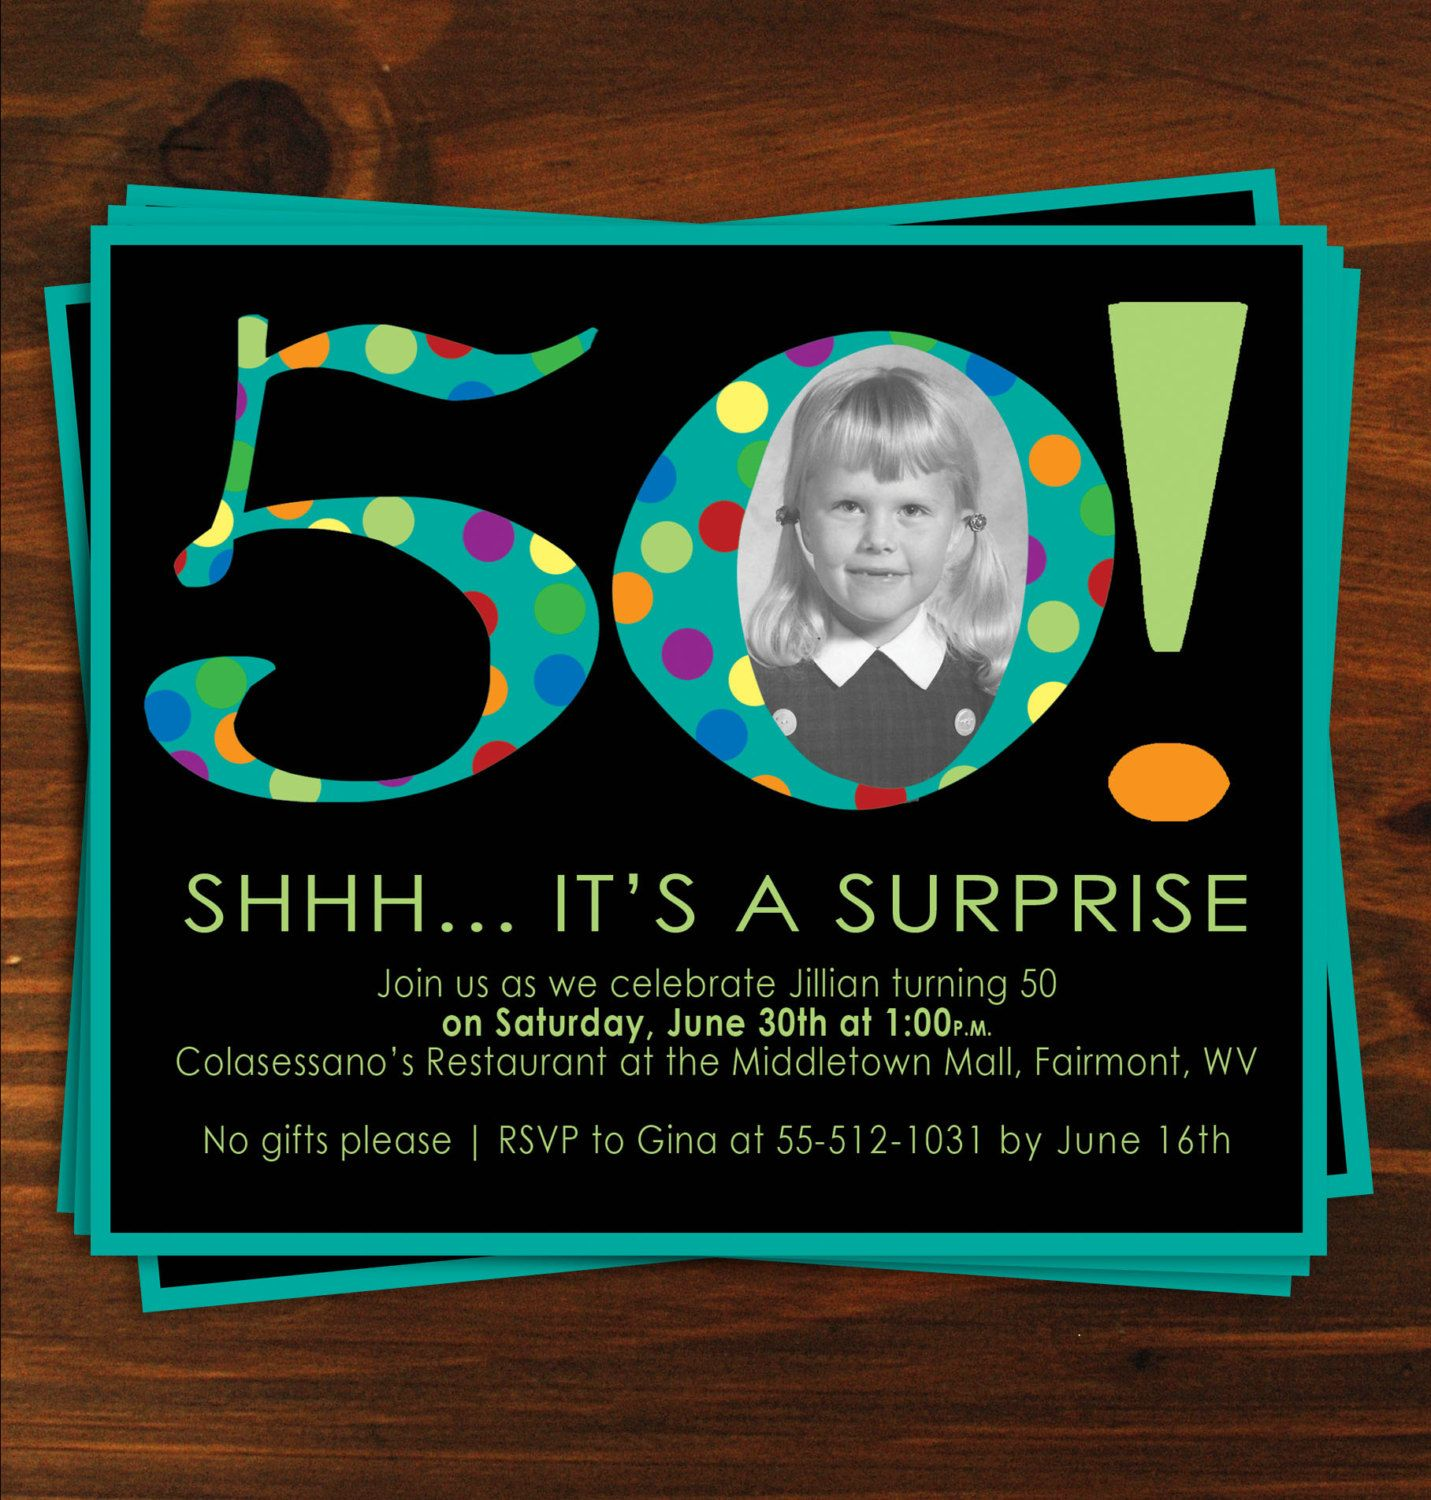 50th birthday party invitations ideas new invitations pinterest 50th birthday party invitations ideas stopboris